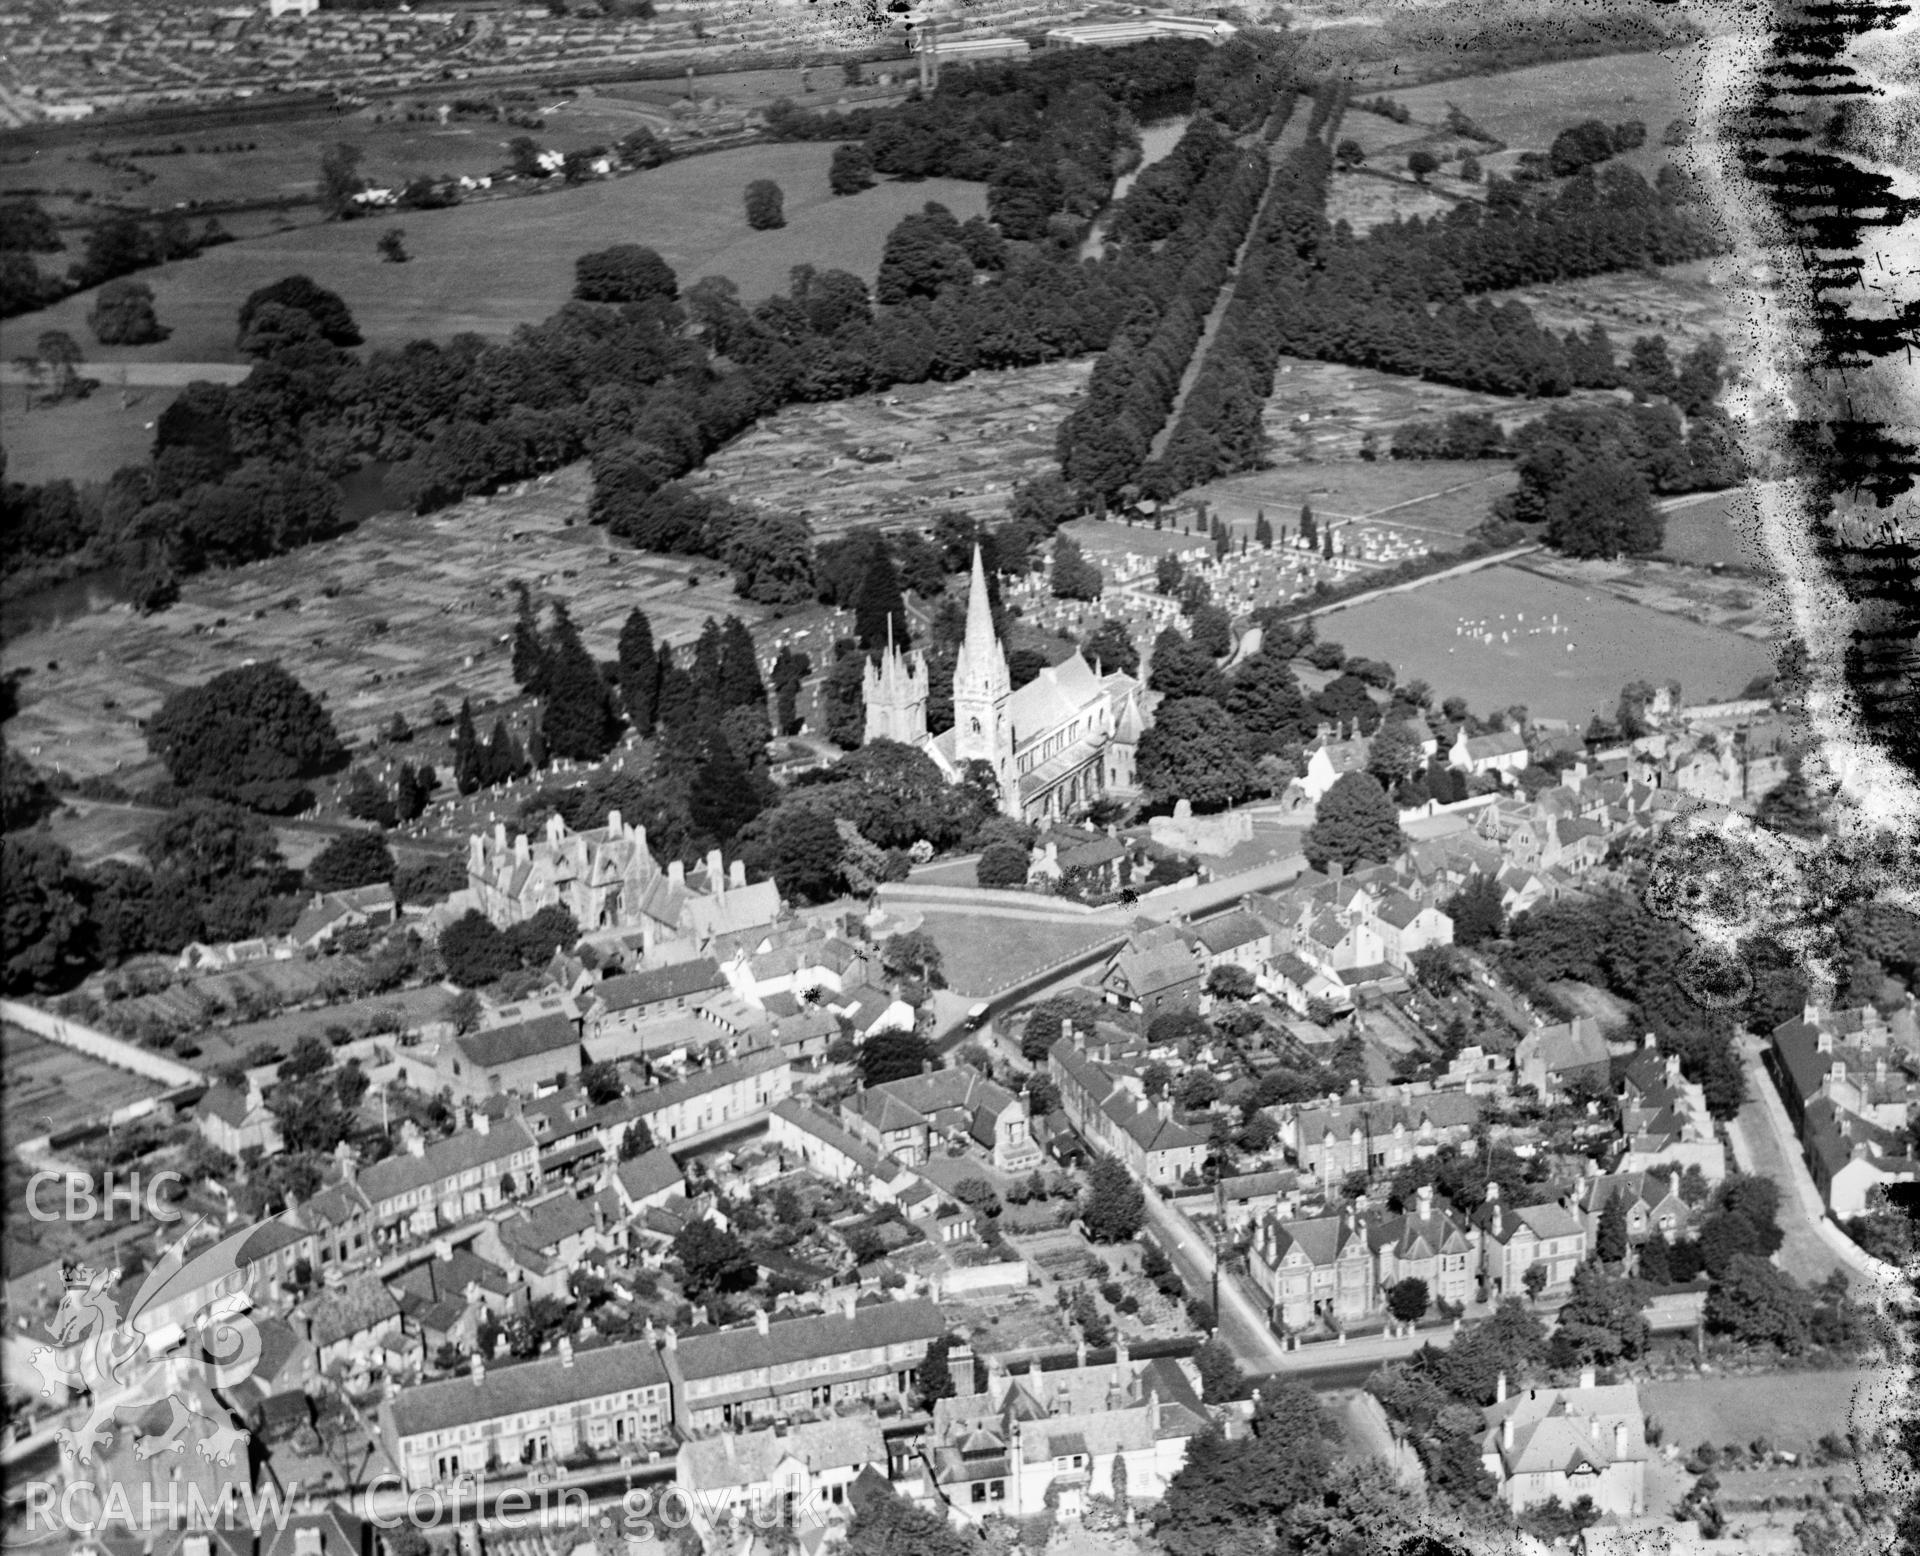 General view of Llandaff North, showing cathedral, oblique aerial view. 5?x4? black and white glass plate negative.